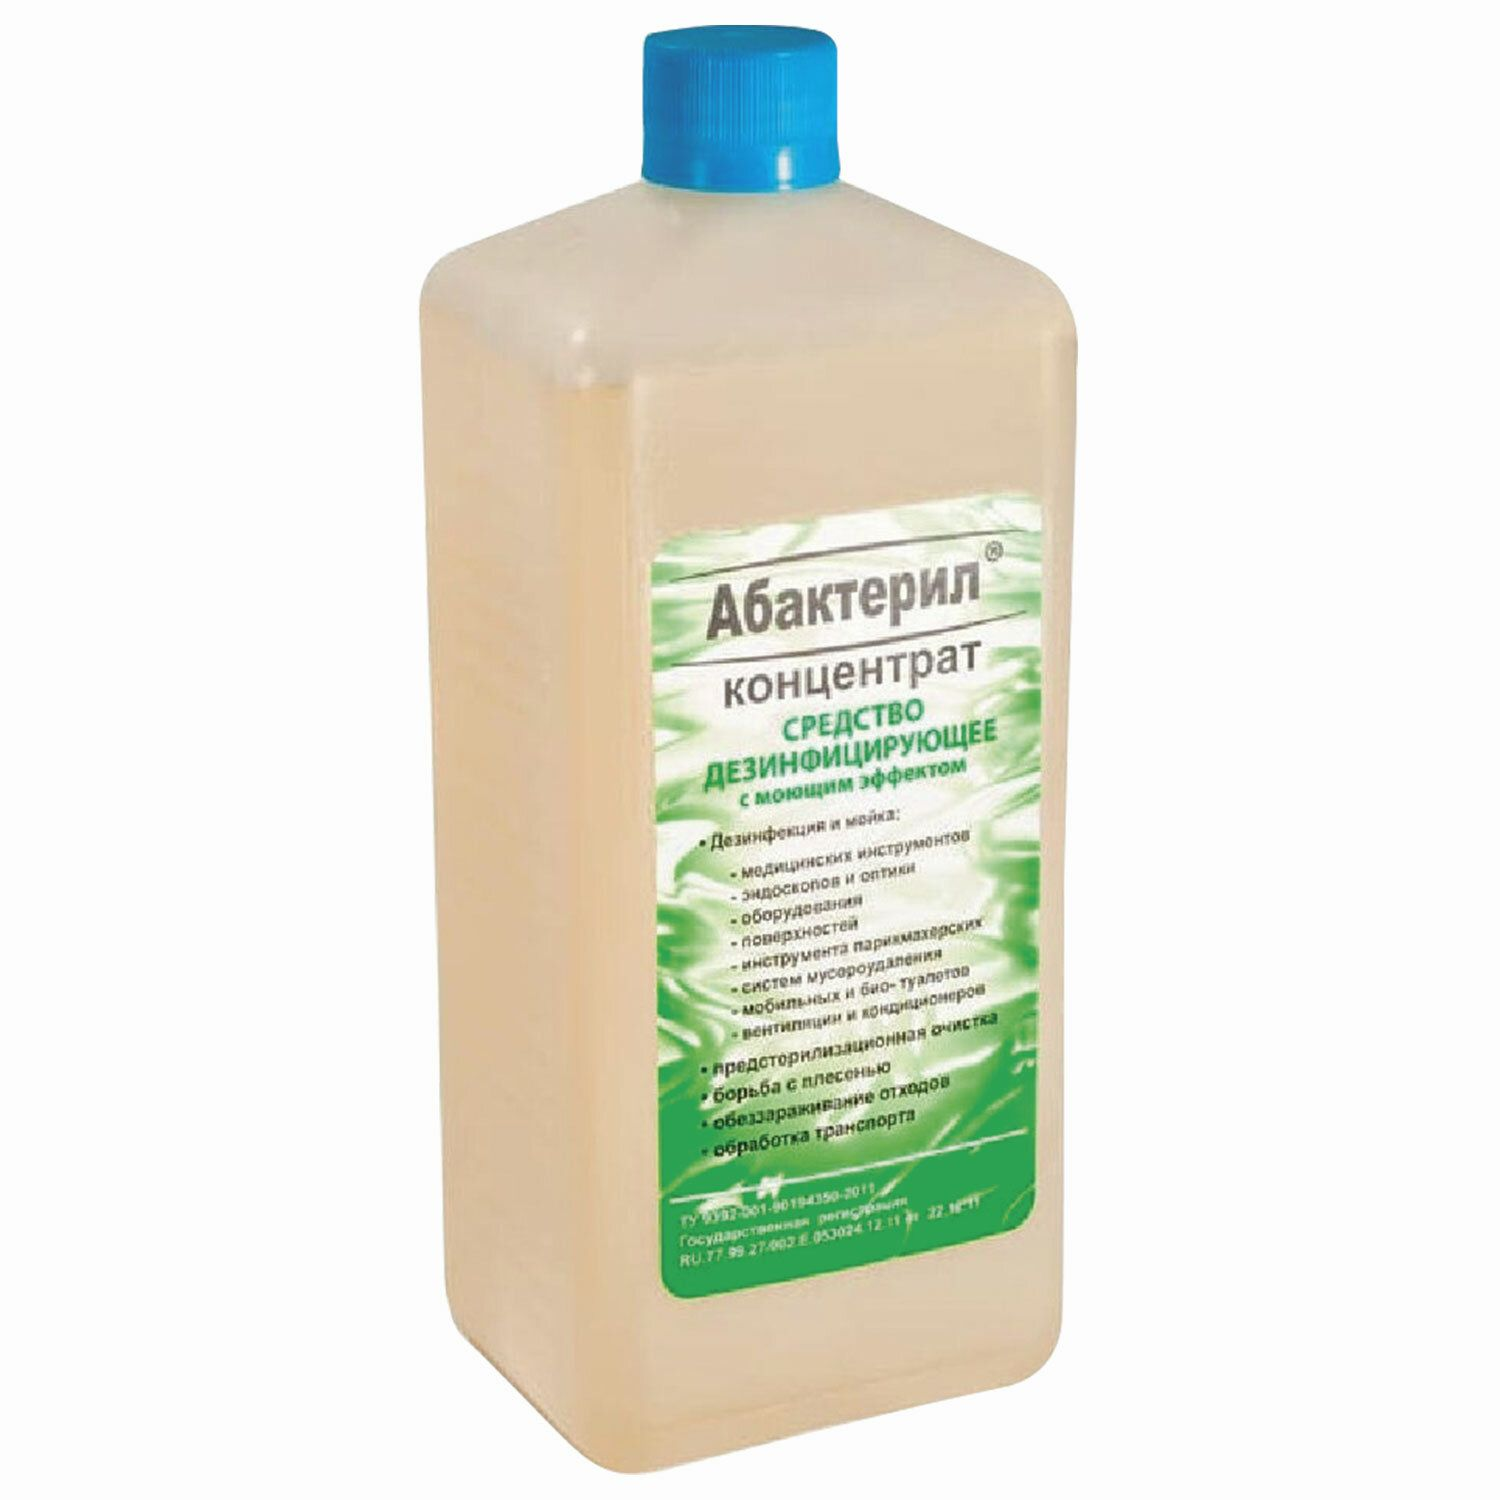 ABACTERIL / Disinfectant concentrate with lid, 1 l